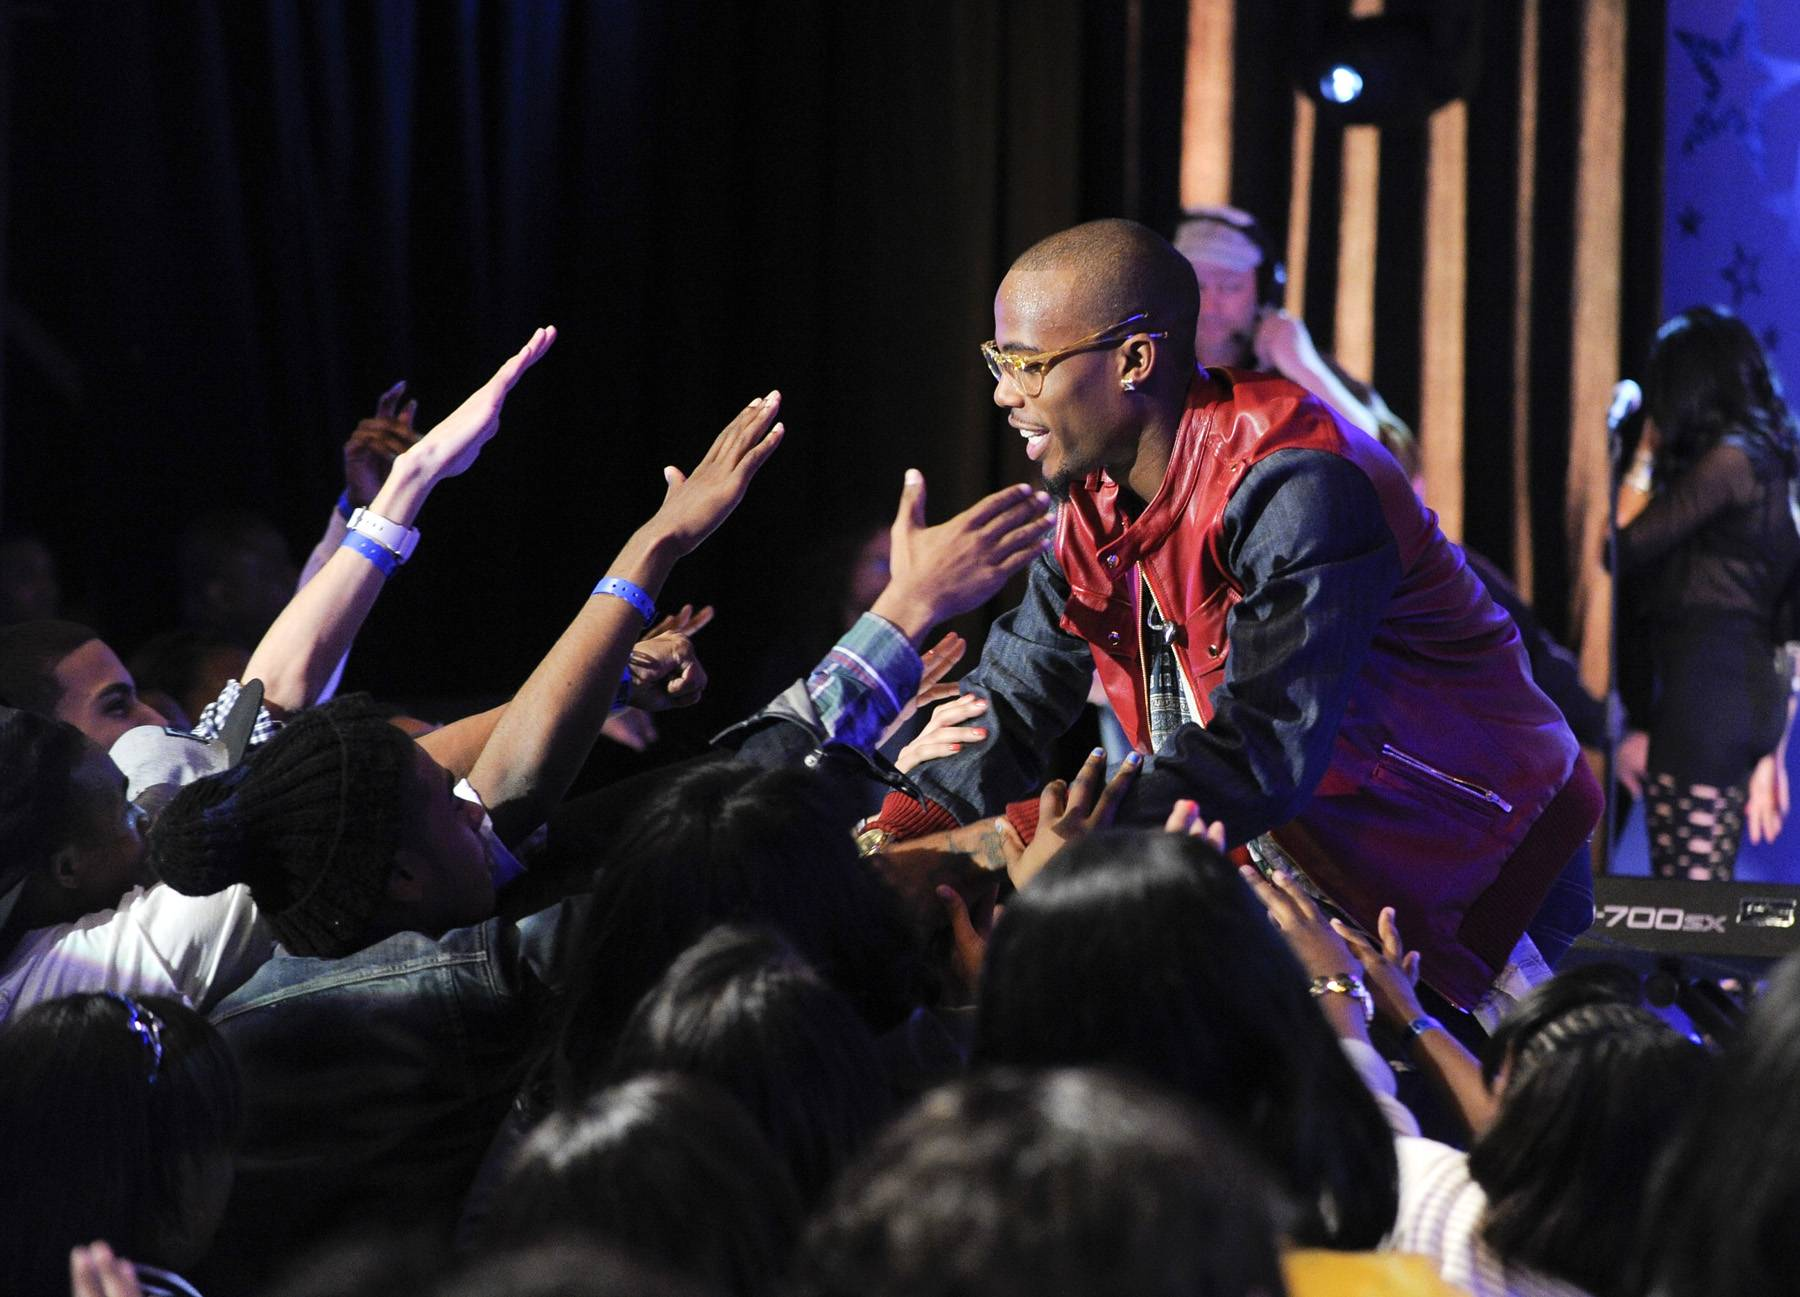 Bobby Ray is in the Building! - B.o.B performs at 106 & Park, May 1, 2012. (Photo: John Ricard / BET)